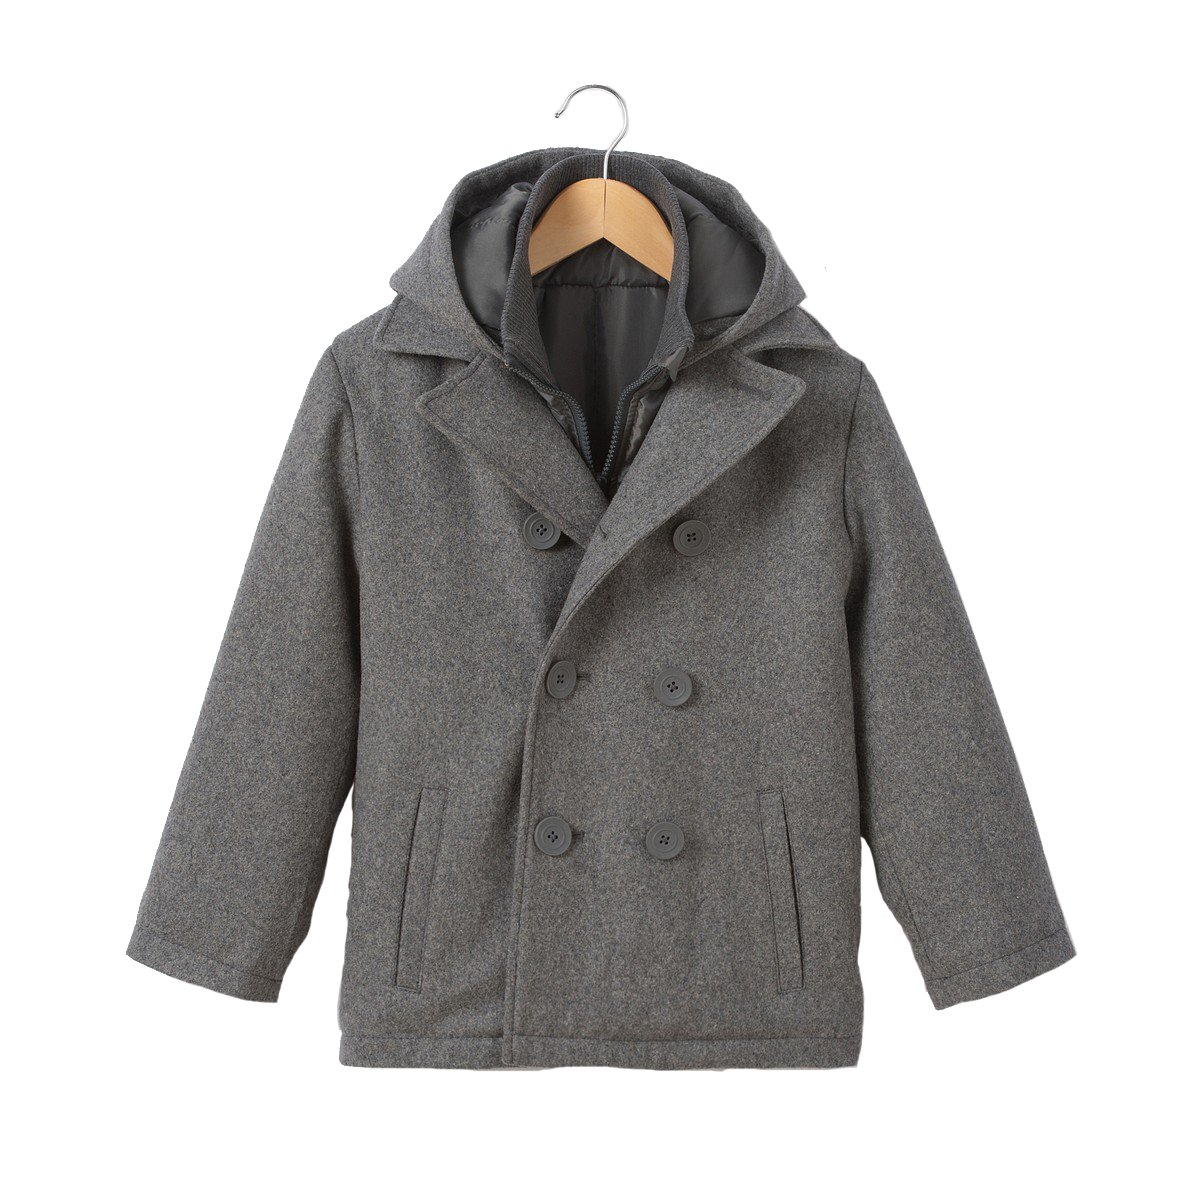 La Redoute Collections Wool Mix Pea Coat, 3-12 Years Grey Size 6 Years (114 cm)